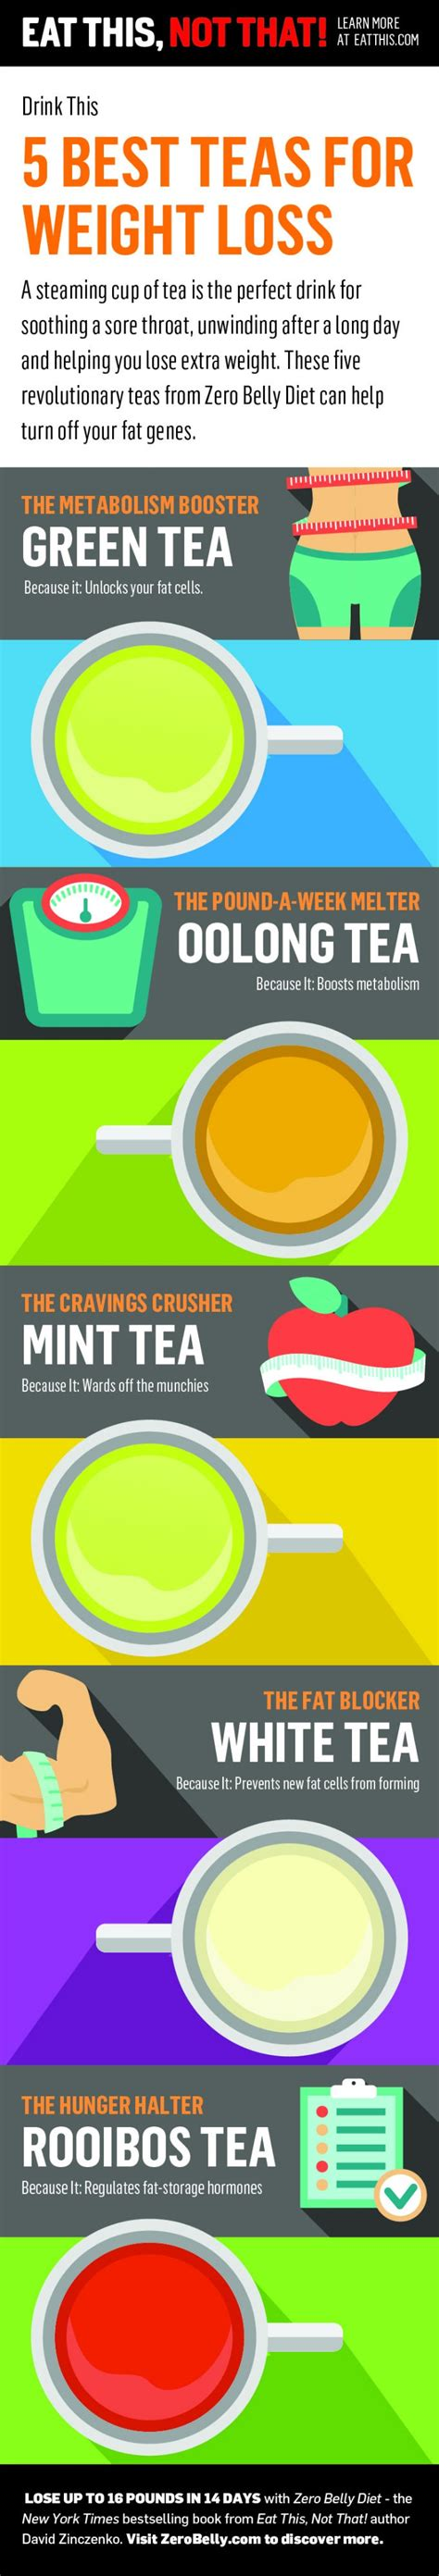 5 weight loss teas 5 best teas for weight loss infographic